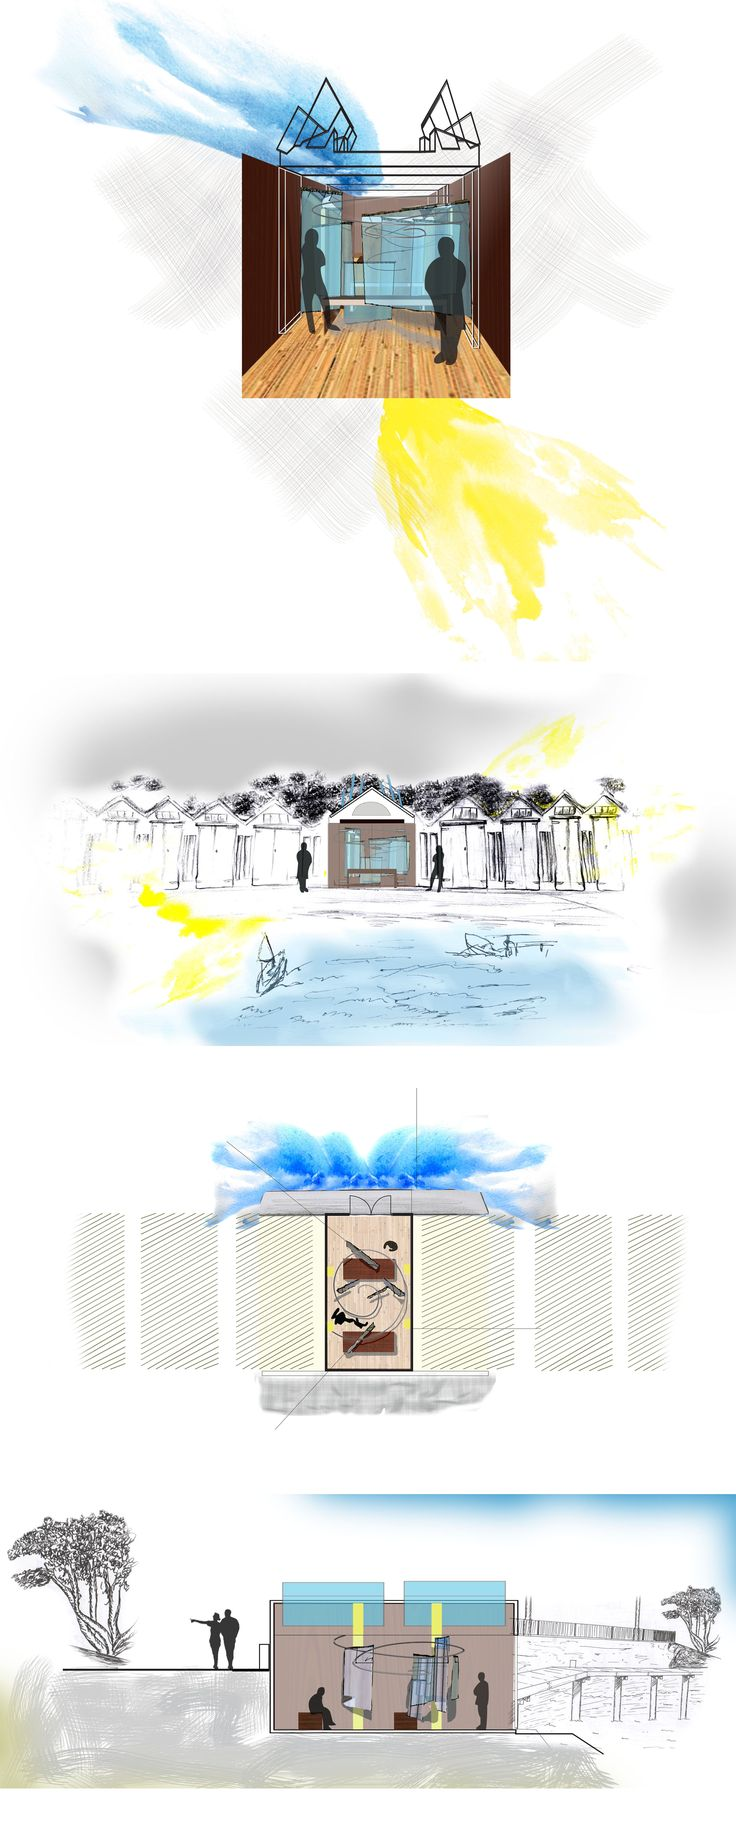 Boat shed design for my uni project elevation, section, plan and perspective